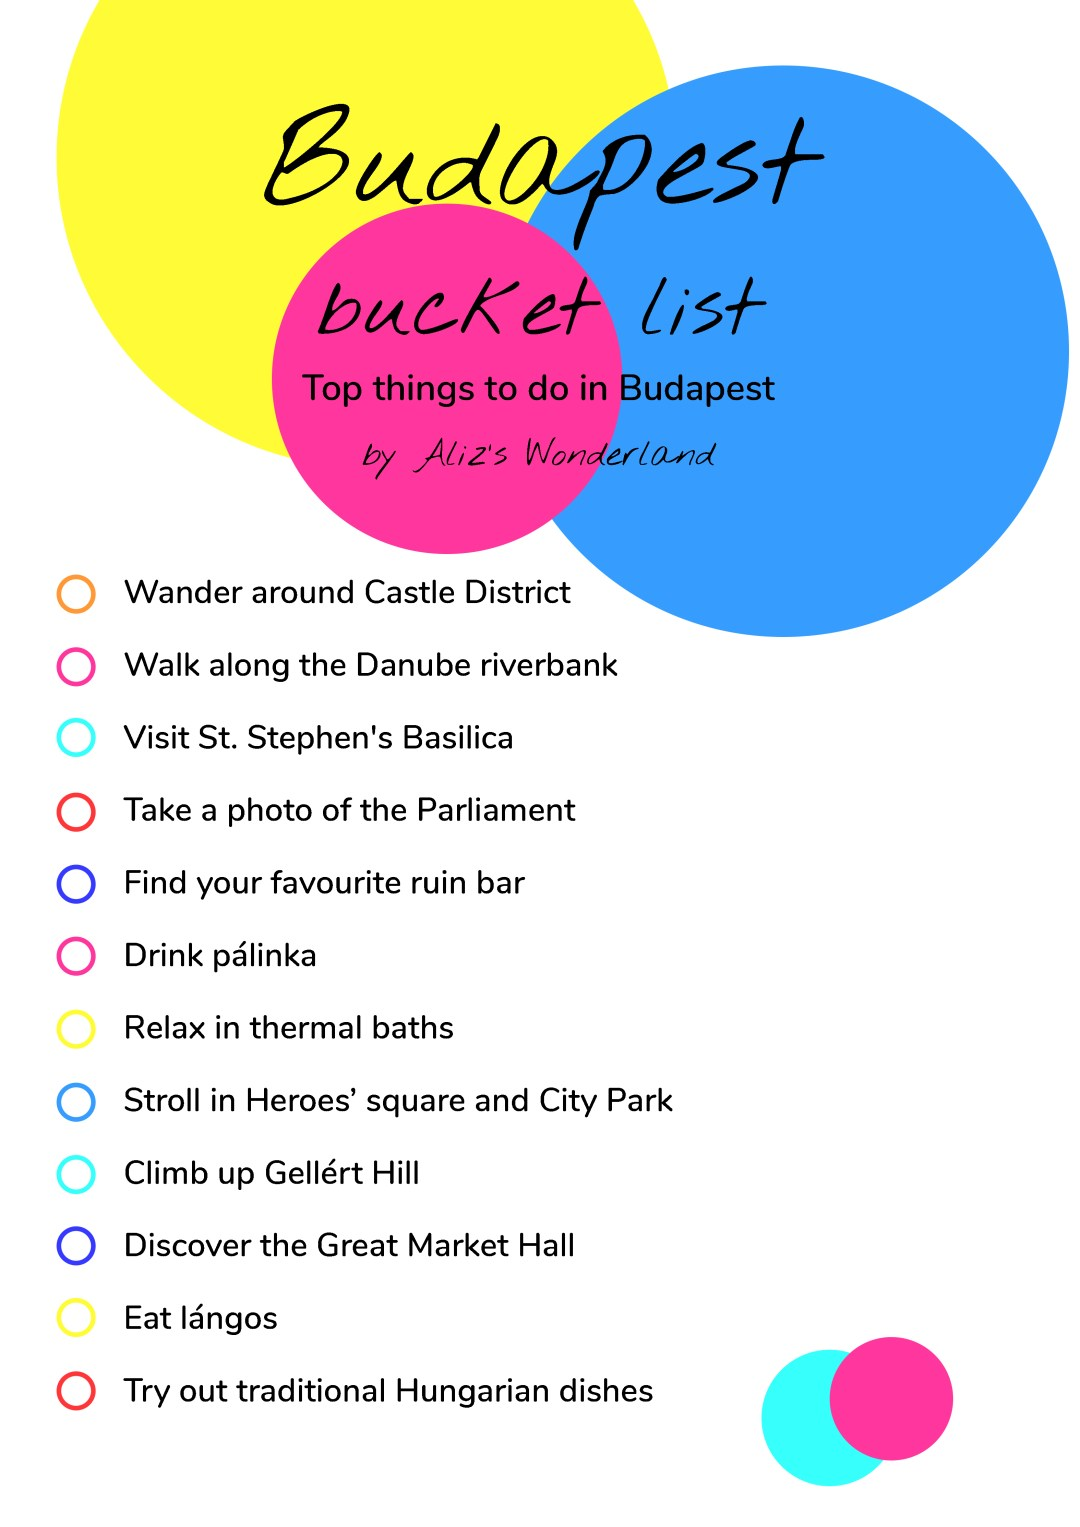 Budapest bucket list - Top things to do in Budapest | Aliz's Wonderland #travel #Budapest #bucketlist #Budapestbucketlist #printable